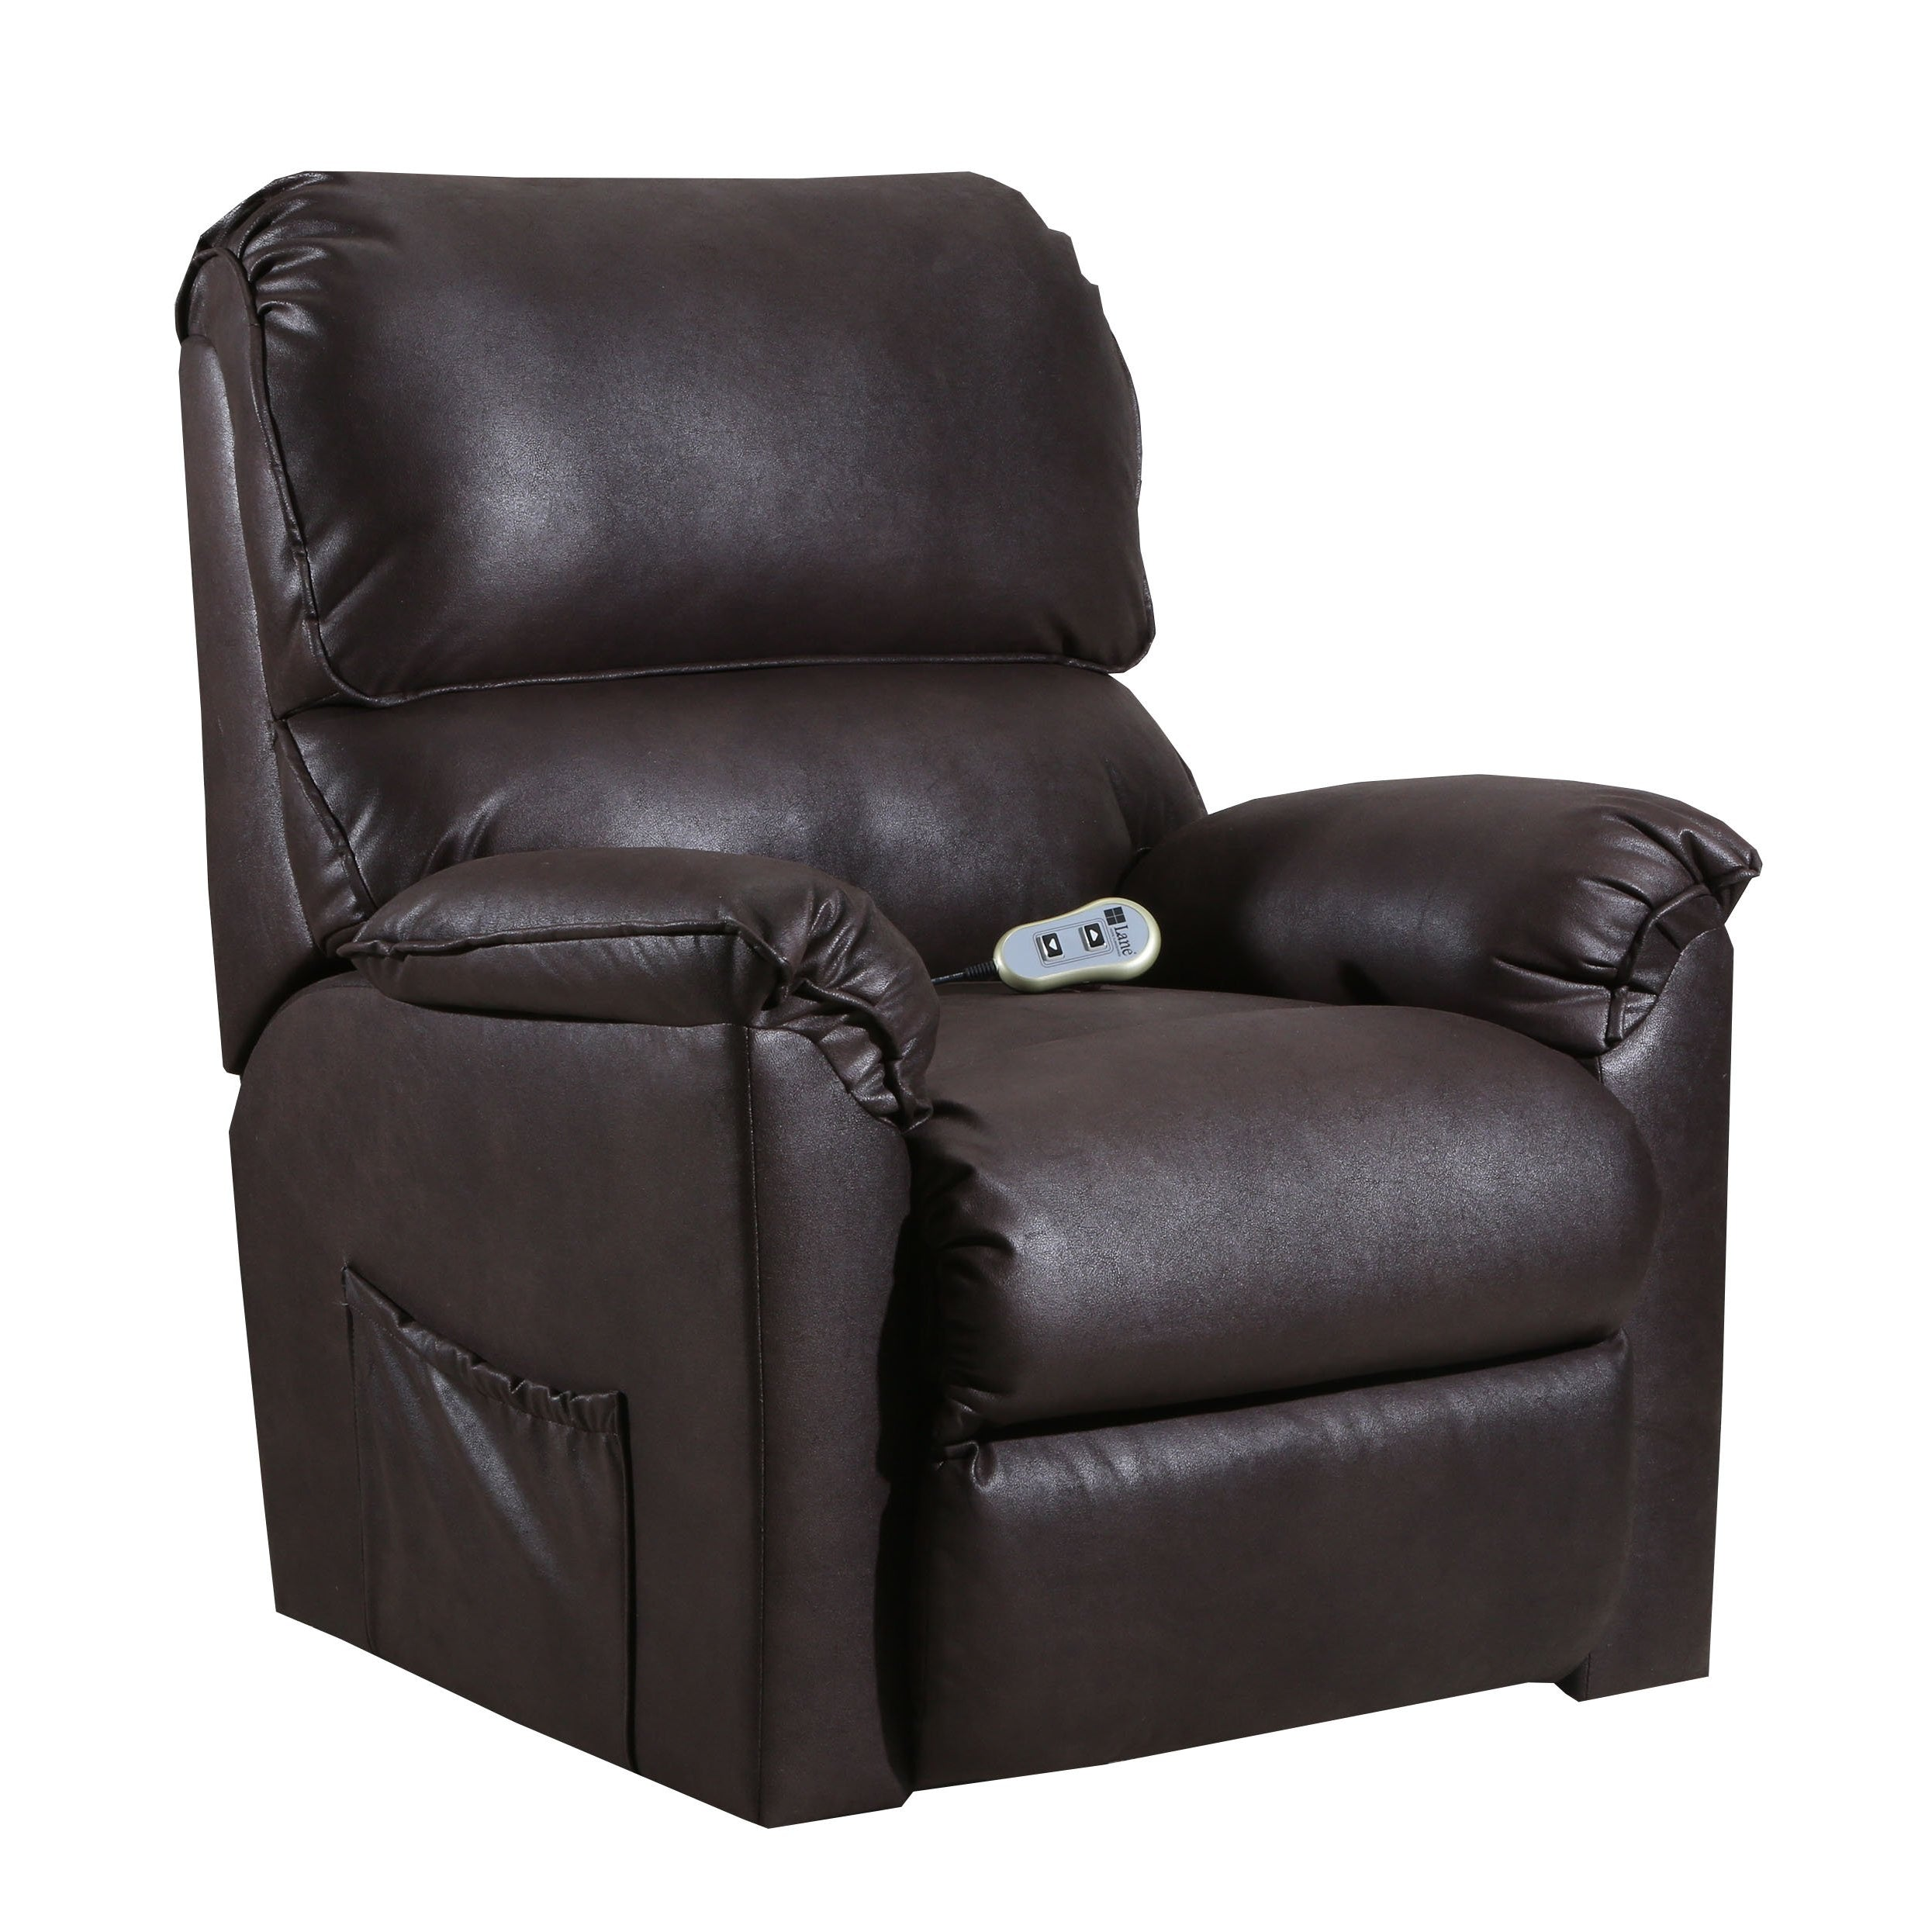 Lane Home Furnishings 4601  Turbo Cocoa Lift Chair - Lifestyle Furniture